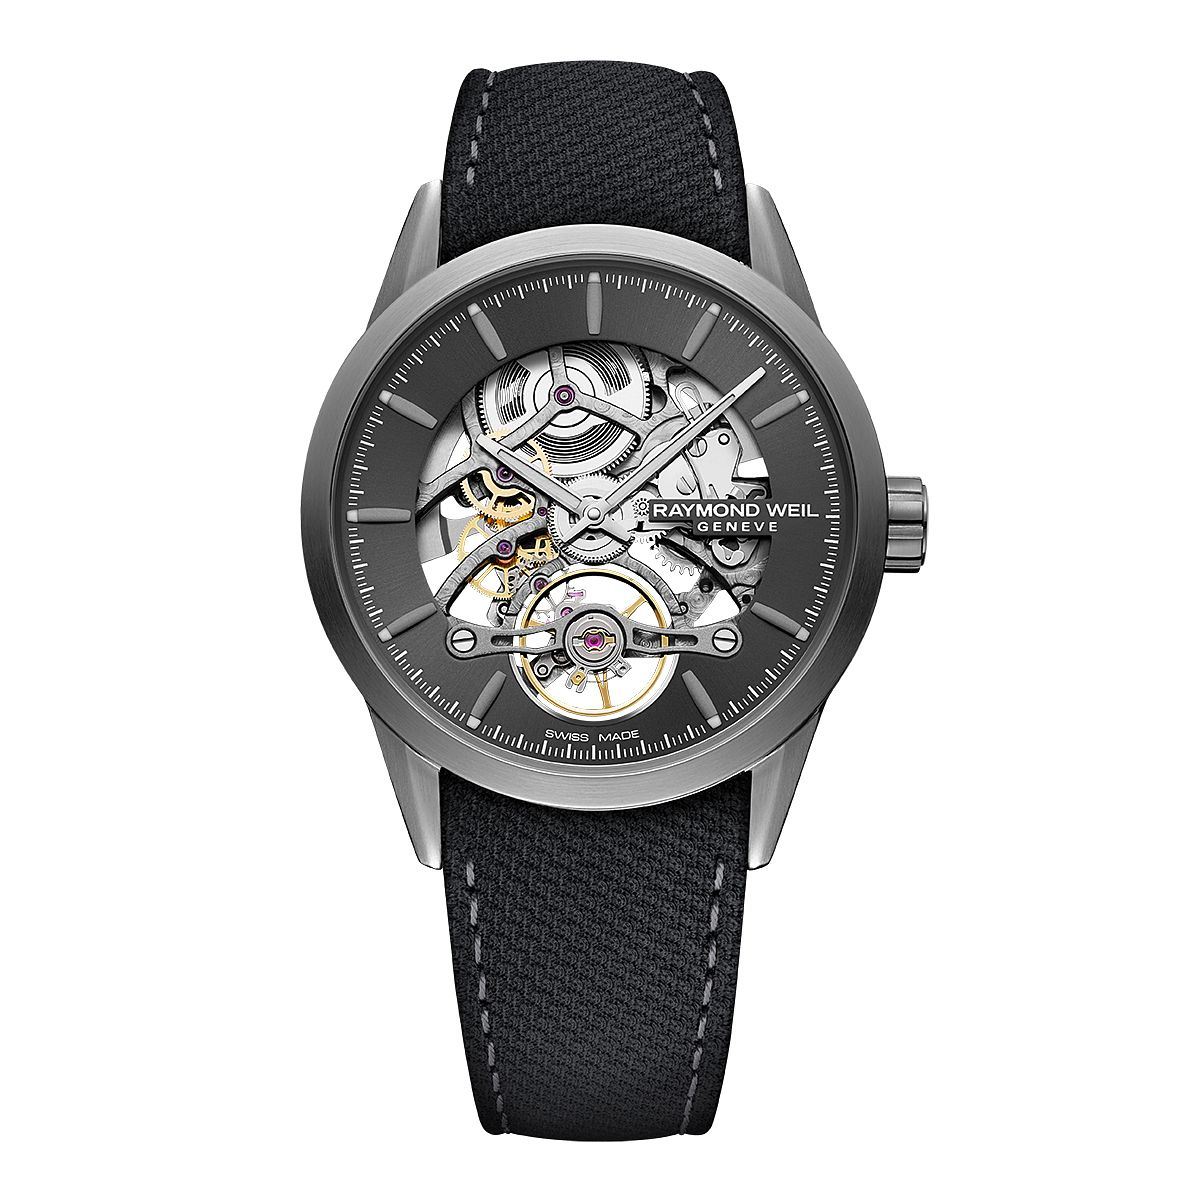 Raymond Weil Freelancer Men's Black Leather Strap Watch - Product number 5868351